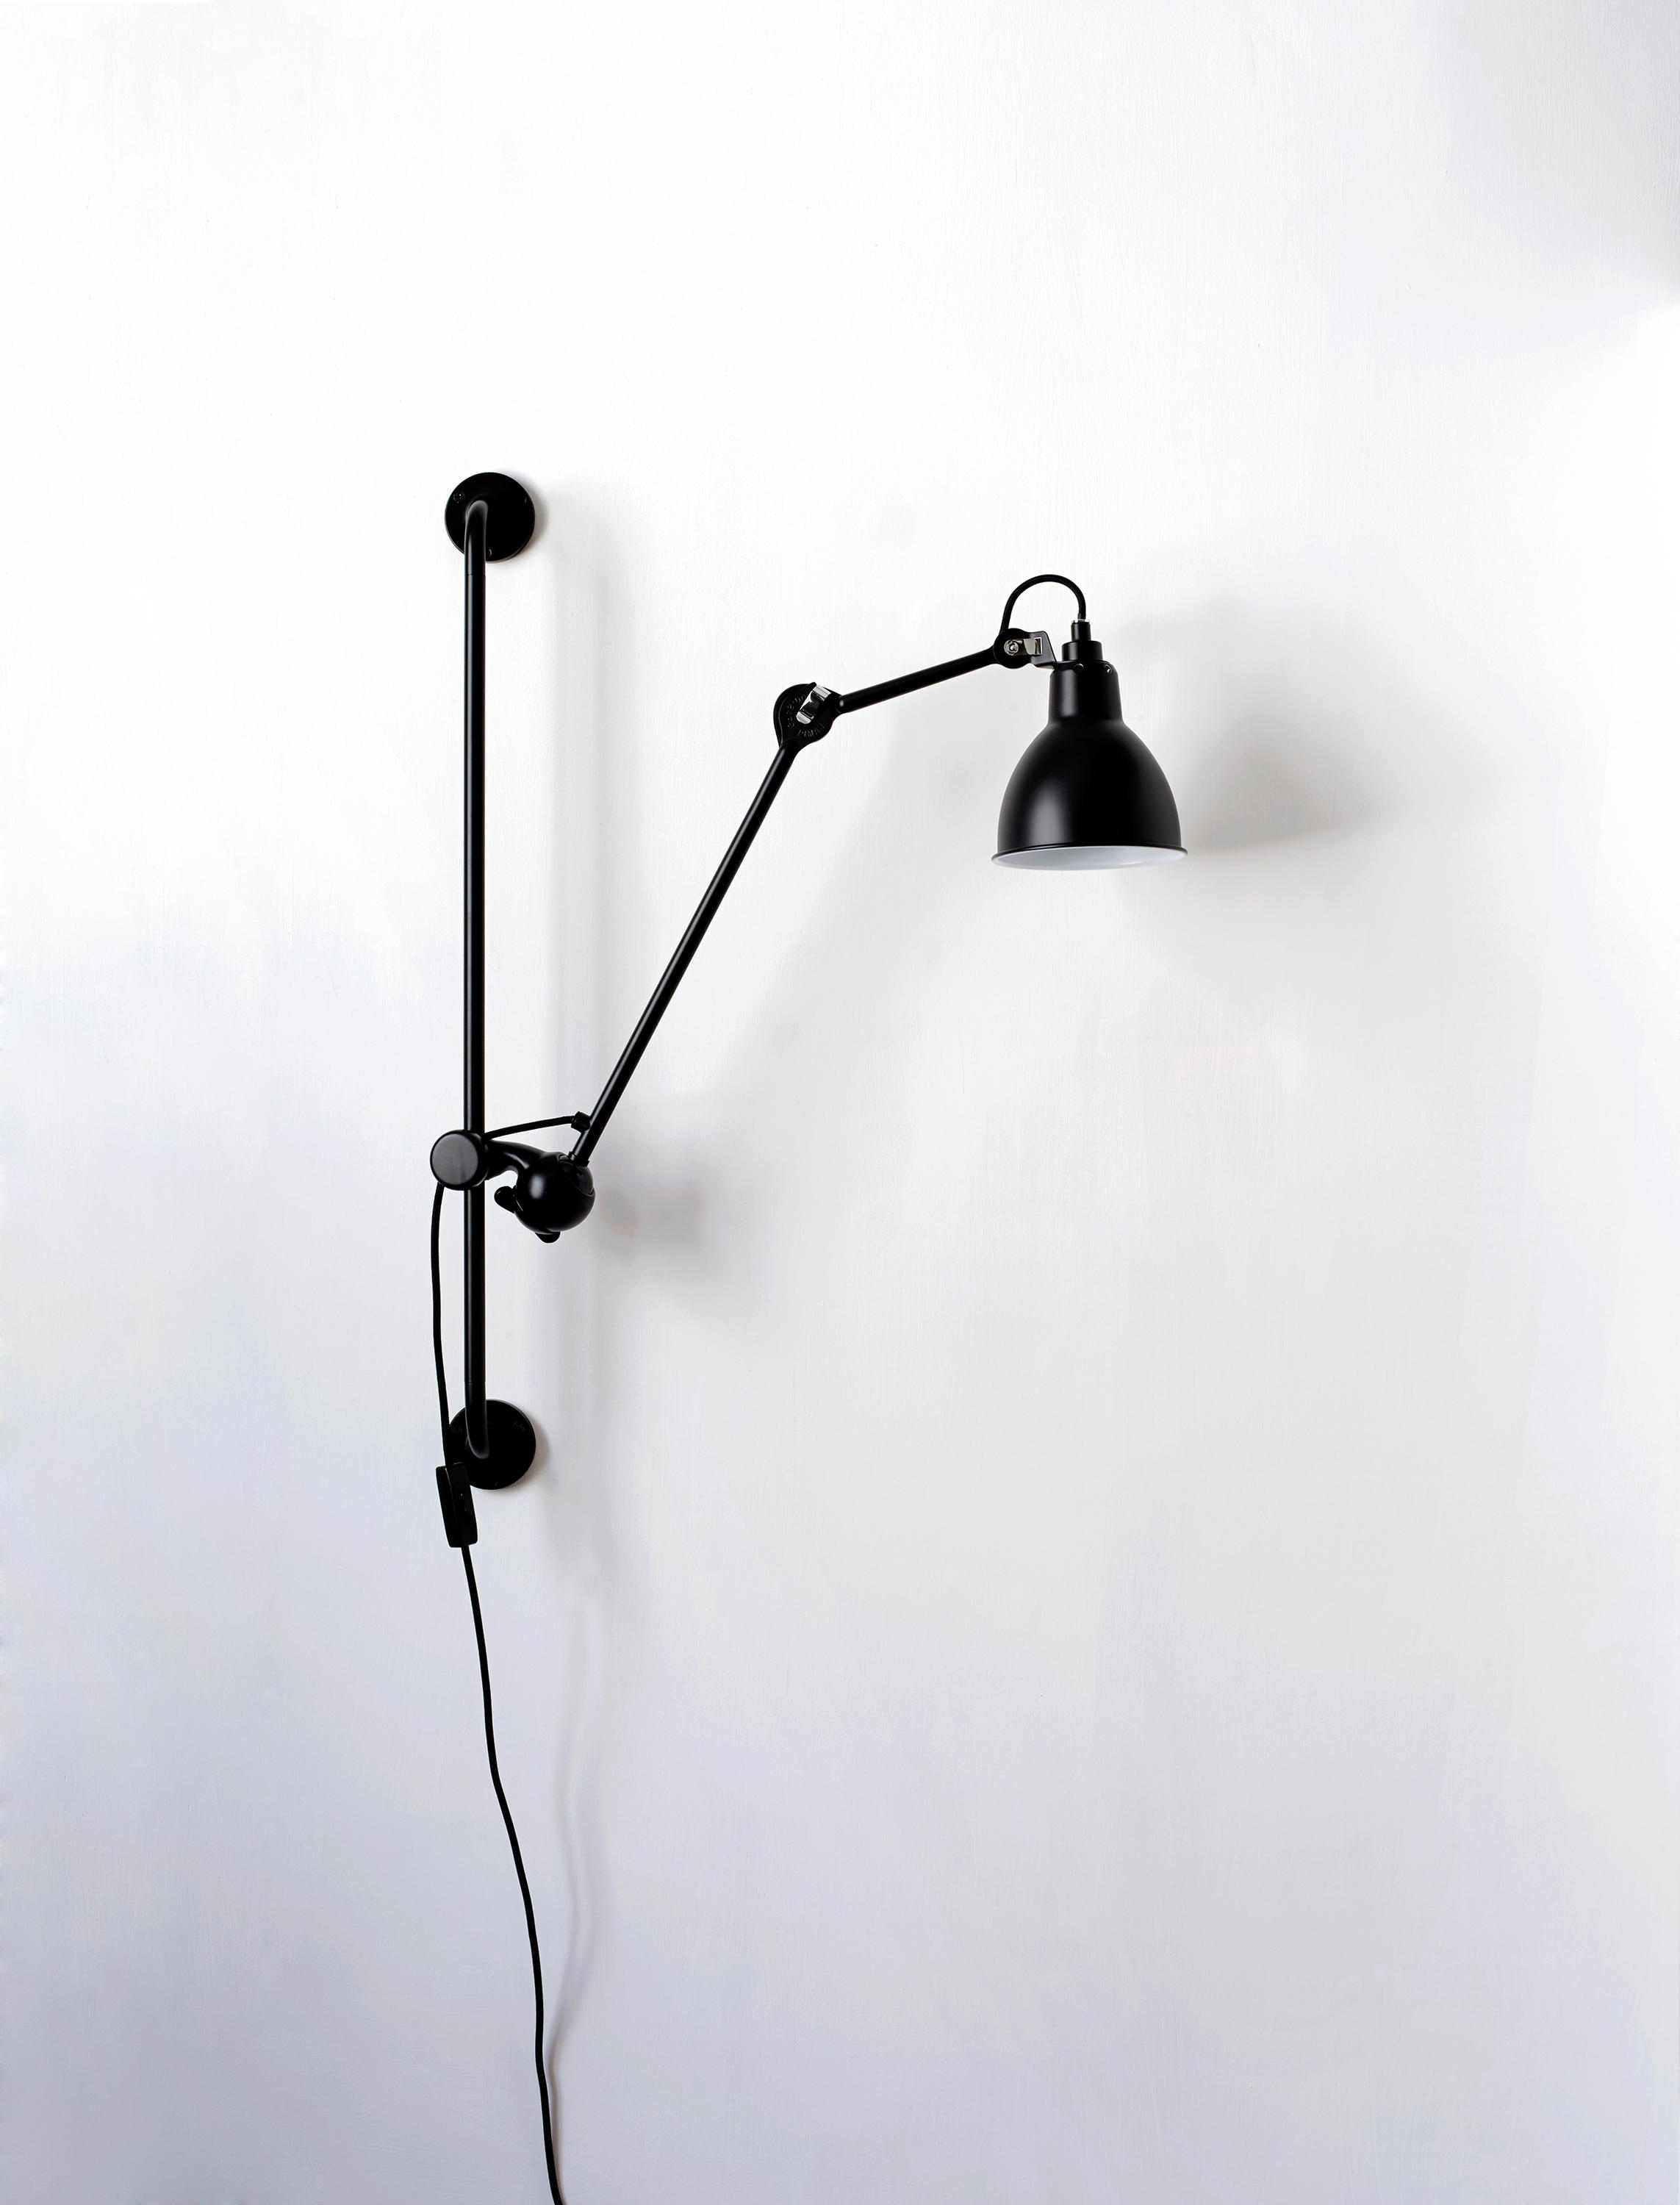 lampe gras n 210 black general lighting from dcw ditions architonic. Black Bedroom Furniture Sets. Home Design Ideas